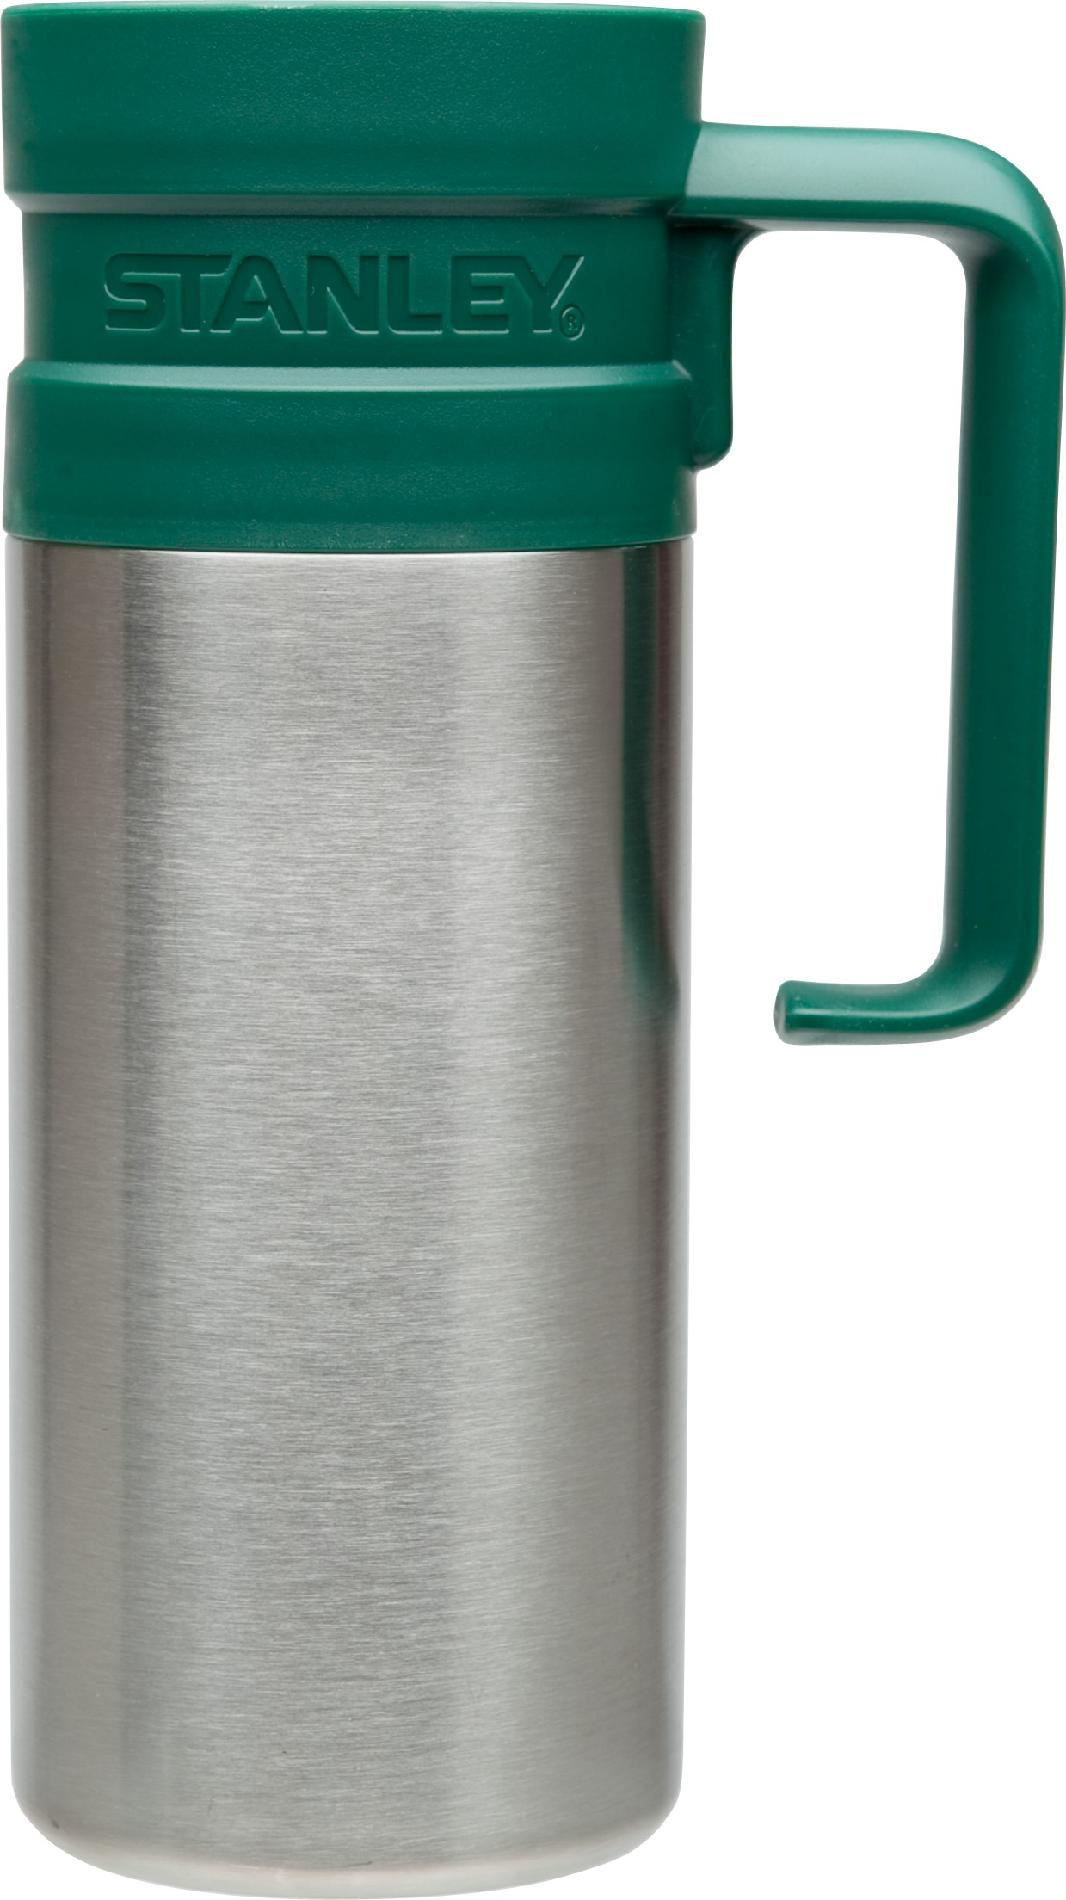 Stanley 16 Oz Utility Travel Mug